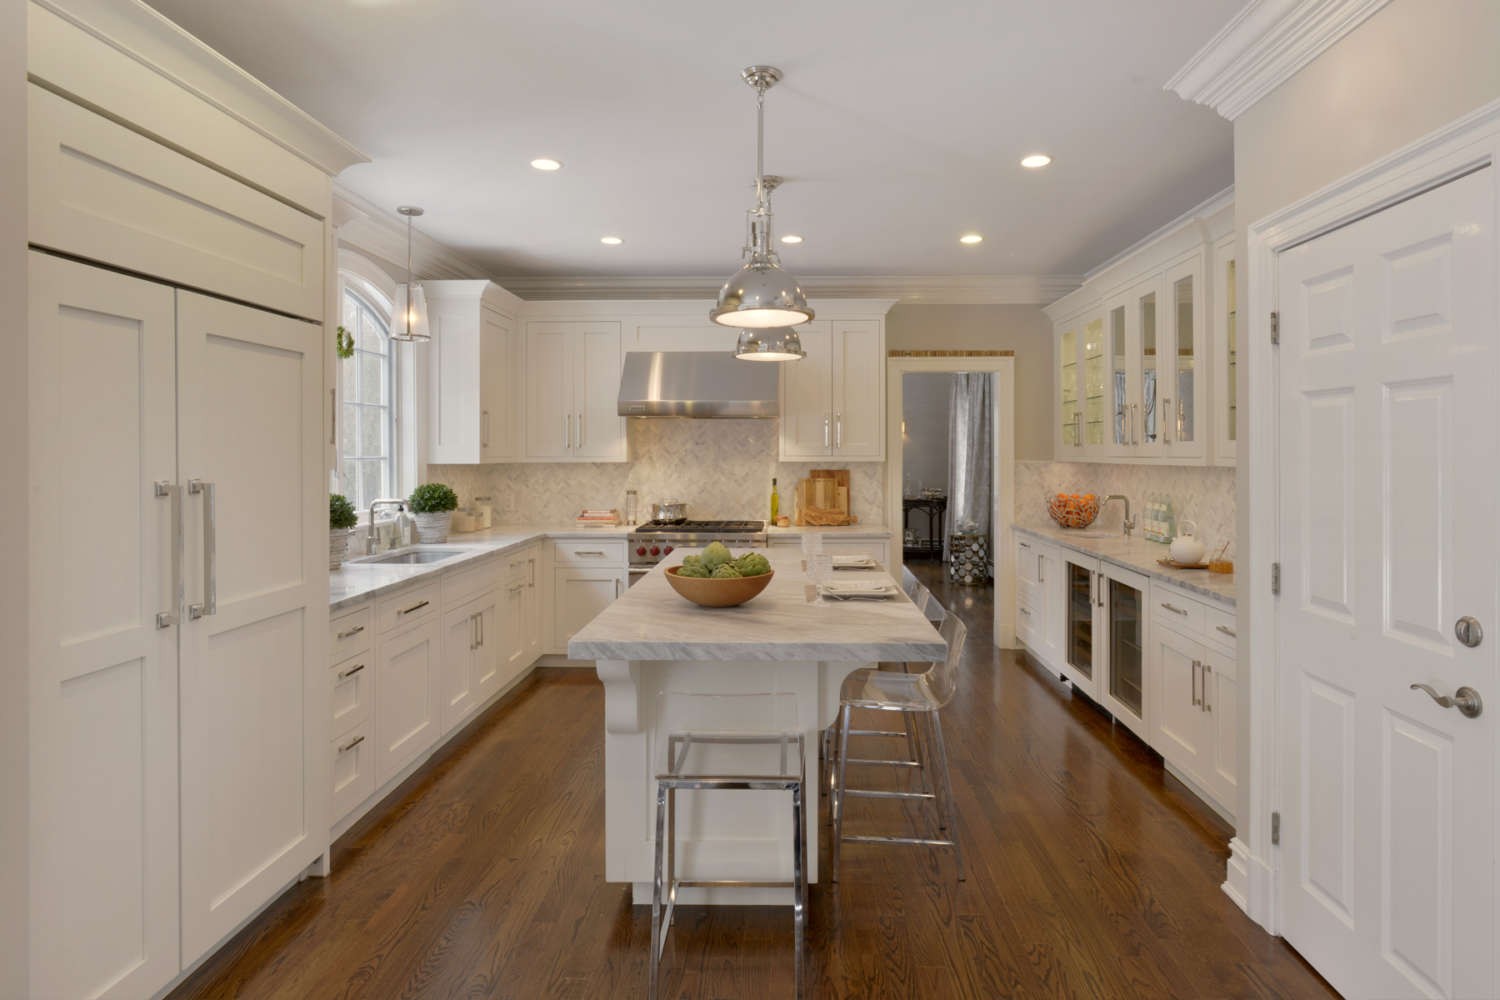 U-shaped kitchen with fully custom Bilotta cabinets. Kitchen features a large island with seating, wood paneled appliances, light gray counters, stainless accents and a mix of white painted cabinets and glass front cabinet doors. Designed by Linda Daniele of Bilotta Kitchens.